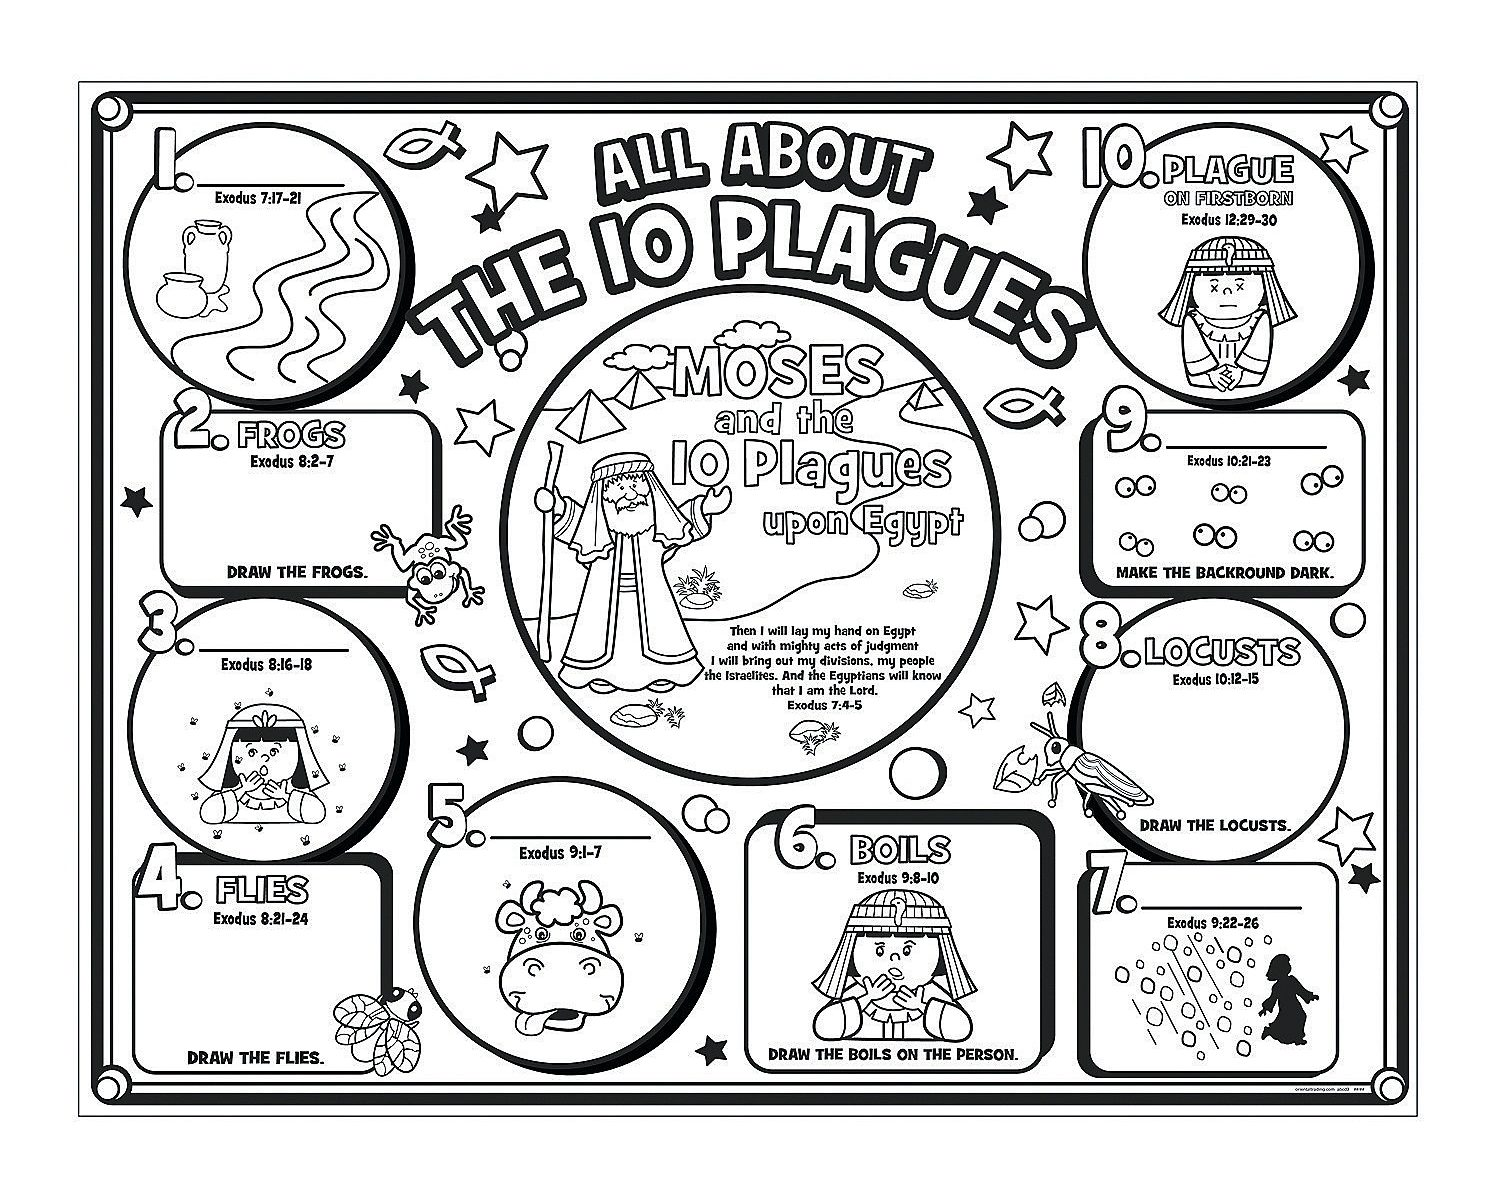 photo about 10 Plagues Printable called Plagues Of Egypt Coloring Website page at  Totally free for